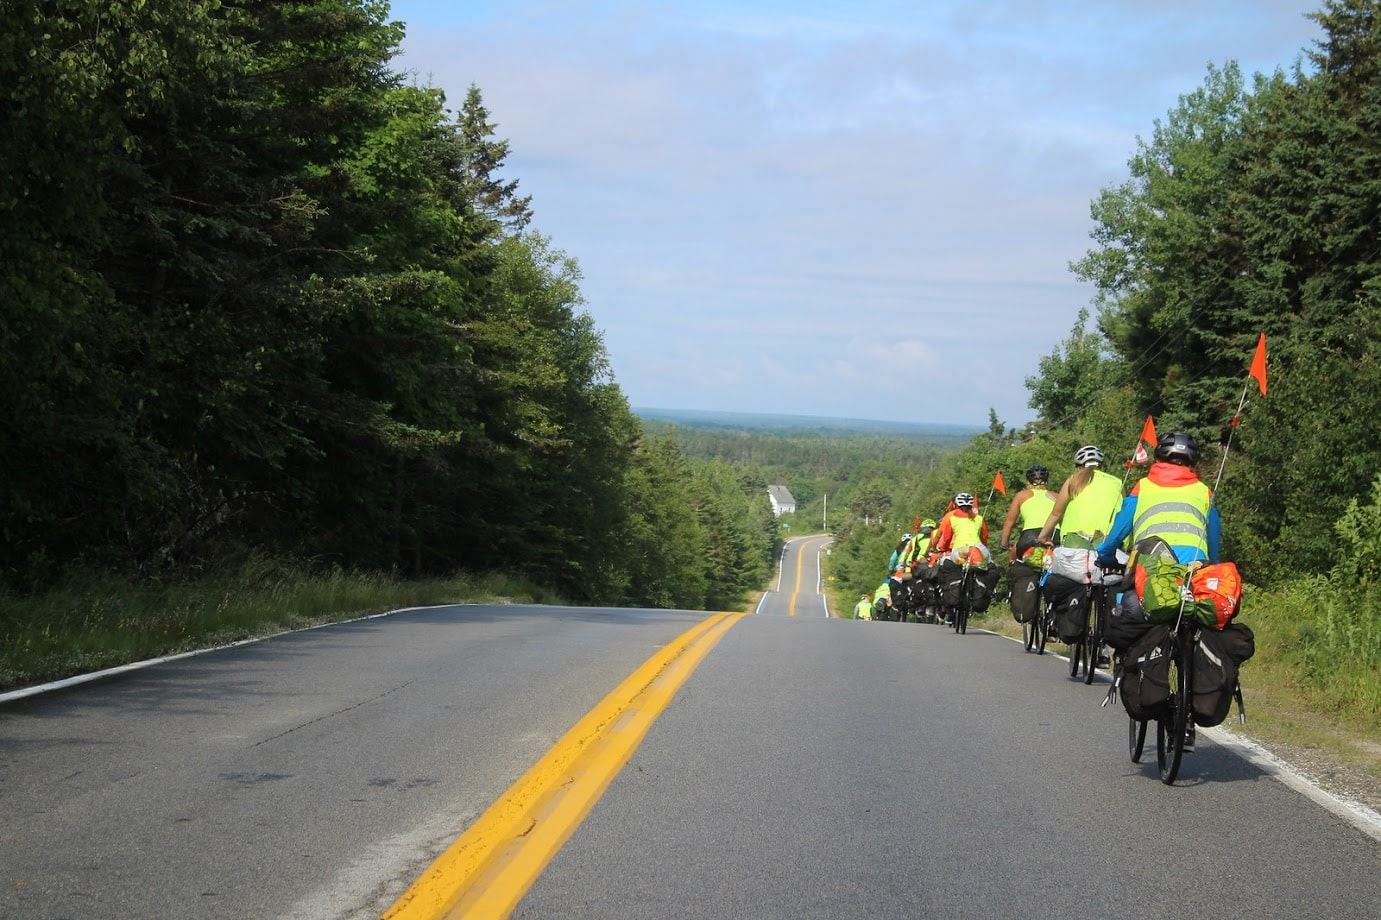 Rolling down the road on a teen summer biking trip in Nova Scotia